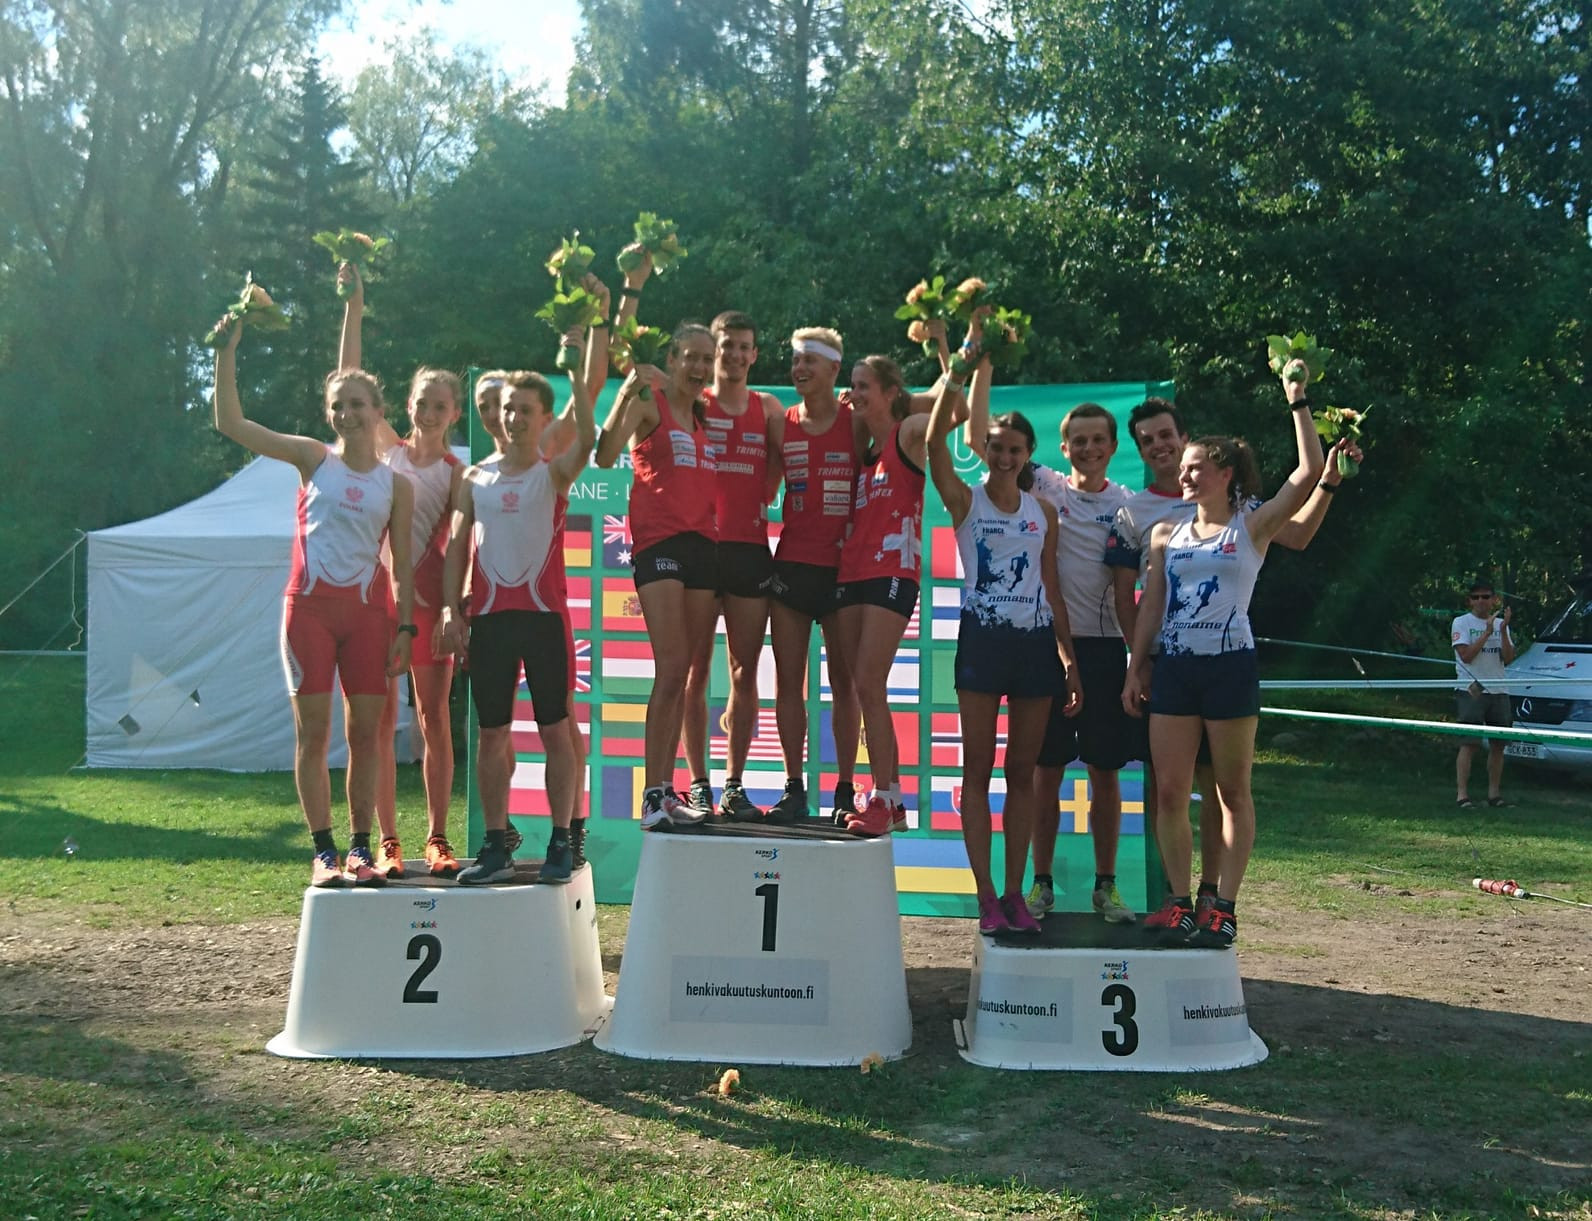 Switzerland earned sprint relay gold on the first day of action at the World University Orienteering Championships ©Facebook/WUC Orienteering 2018